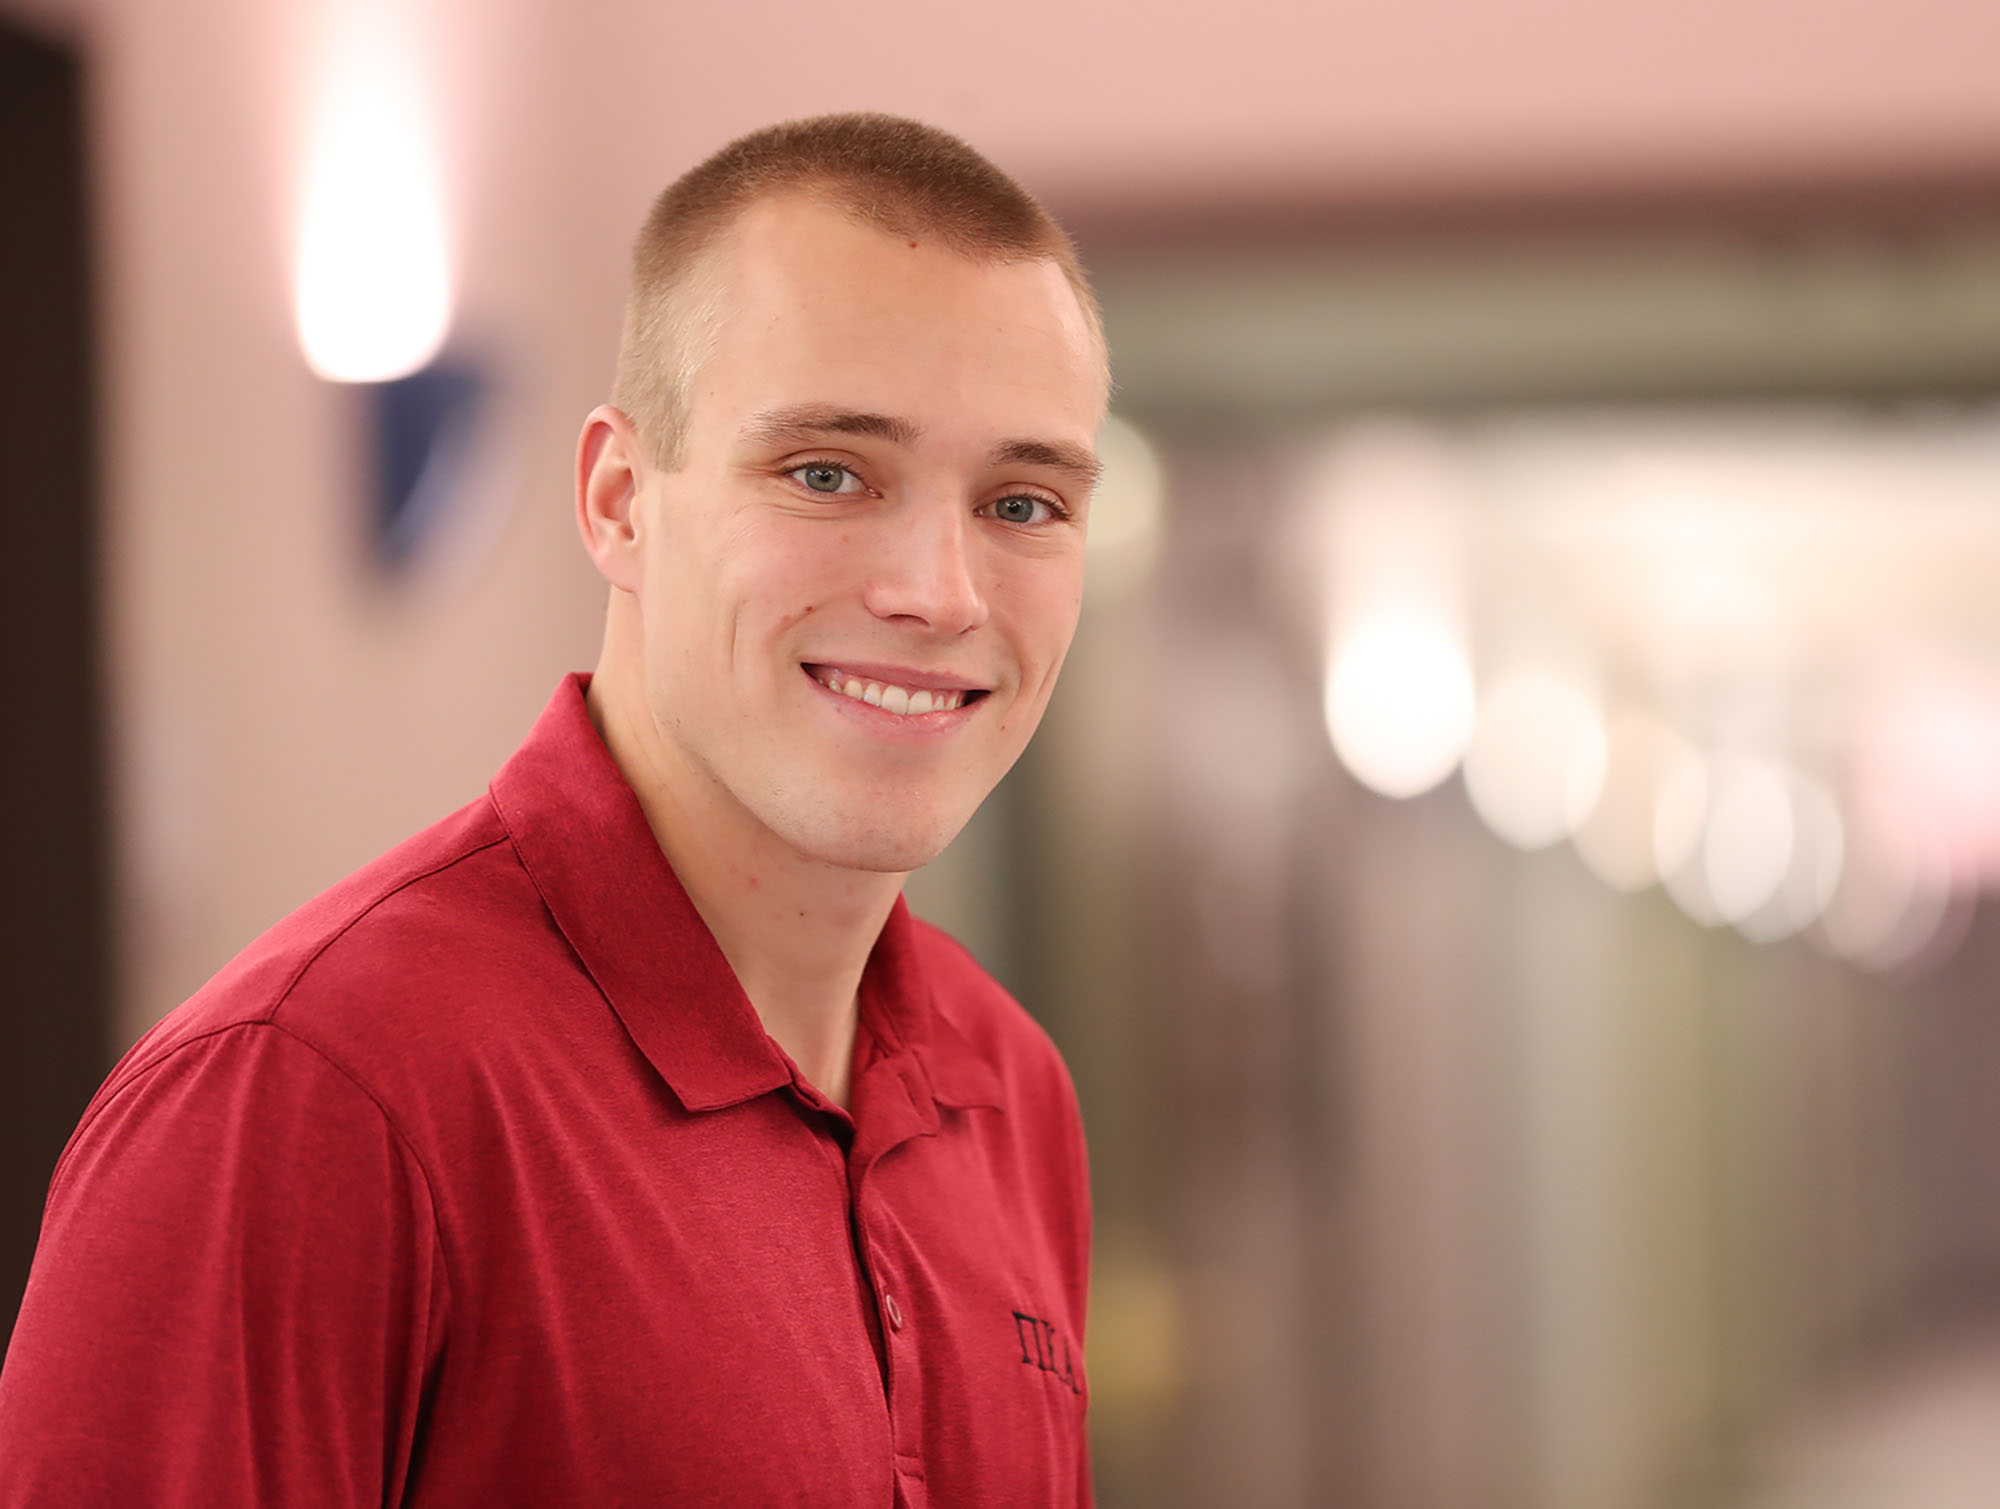 Ryan Clark of Kearney will deliver the student address during Friday's winter commencement at UNK. Clark is graduating summa cum laude with bachelor's degrees in mathematics and business administration with a finance emphasis. (Photo by Corbey R. Dorsey, UNK Communications)